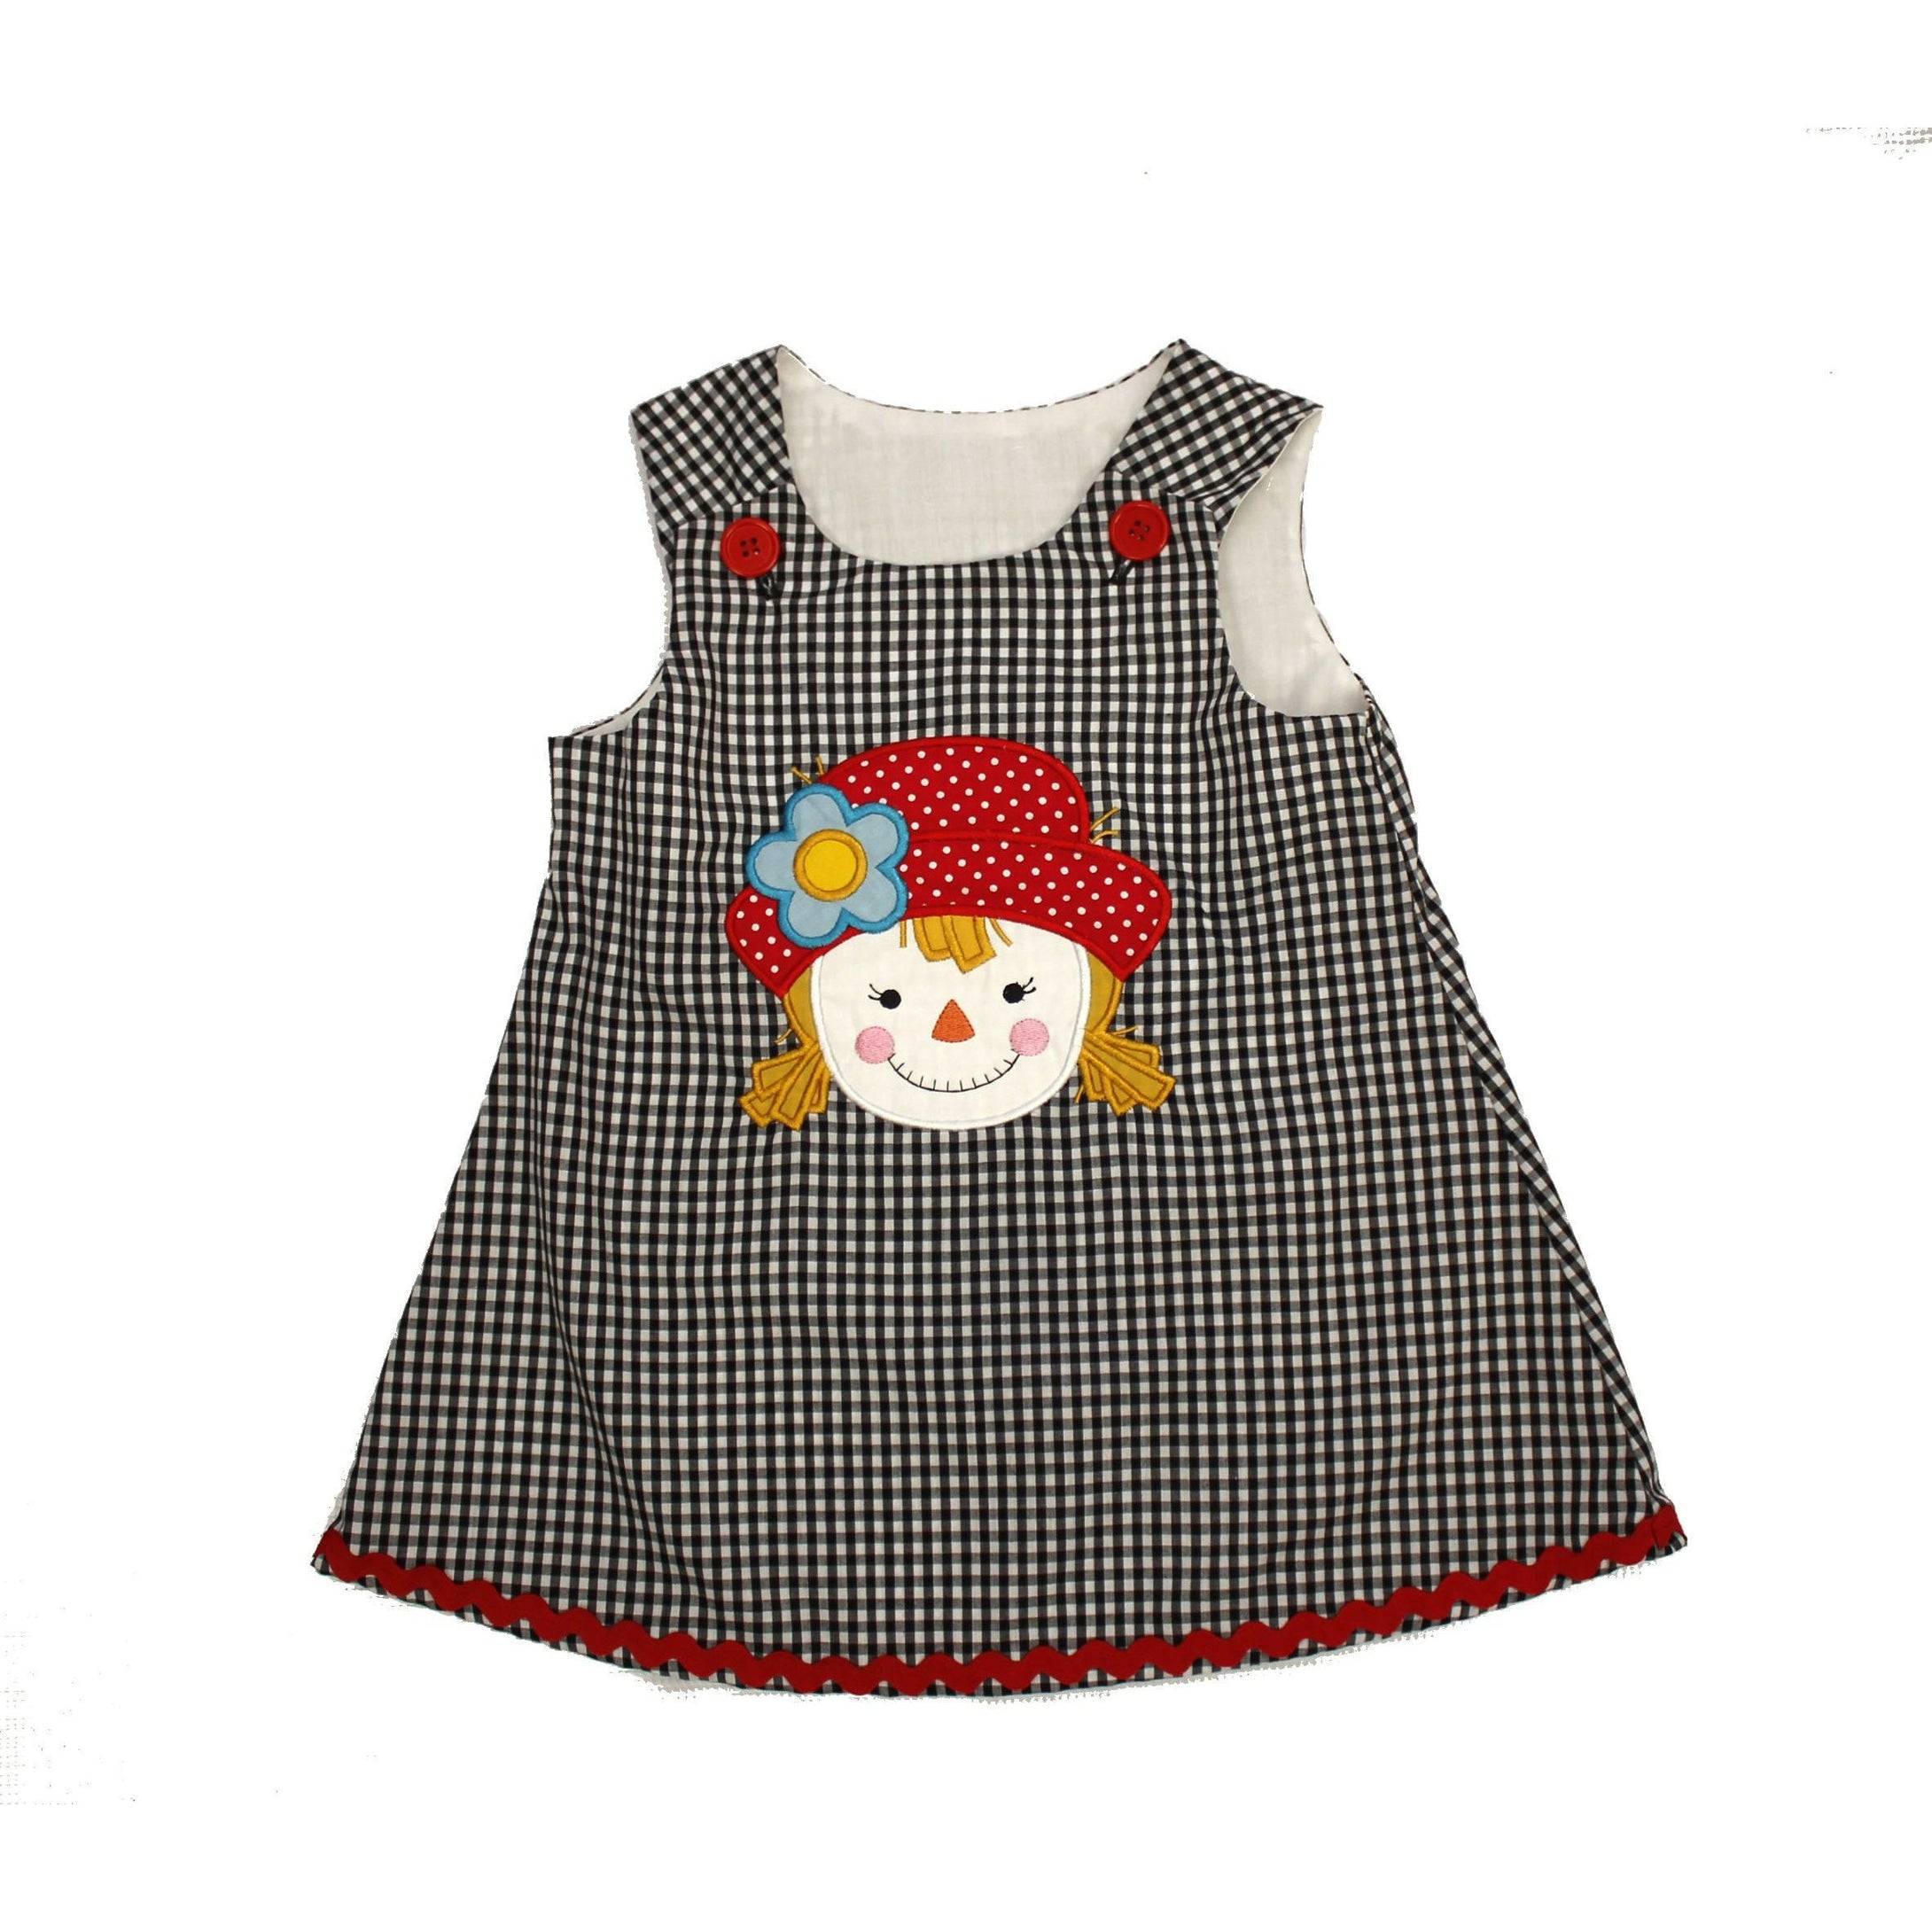 Thanksgiving dress  Scarecrow black gingham dress  Jumper dress Christmas Fall dress - Ready to Ship